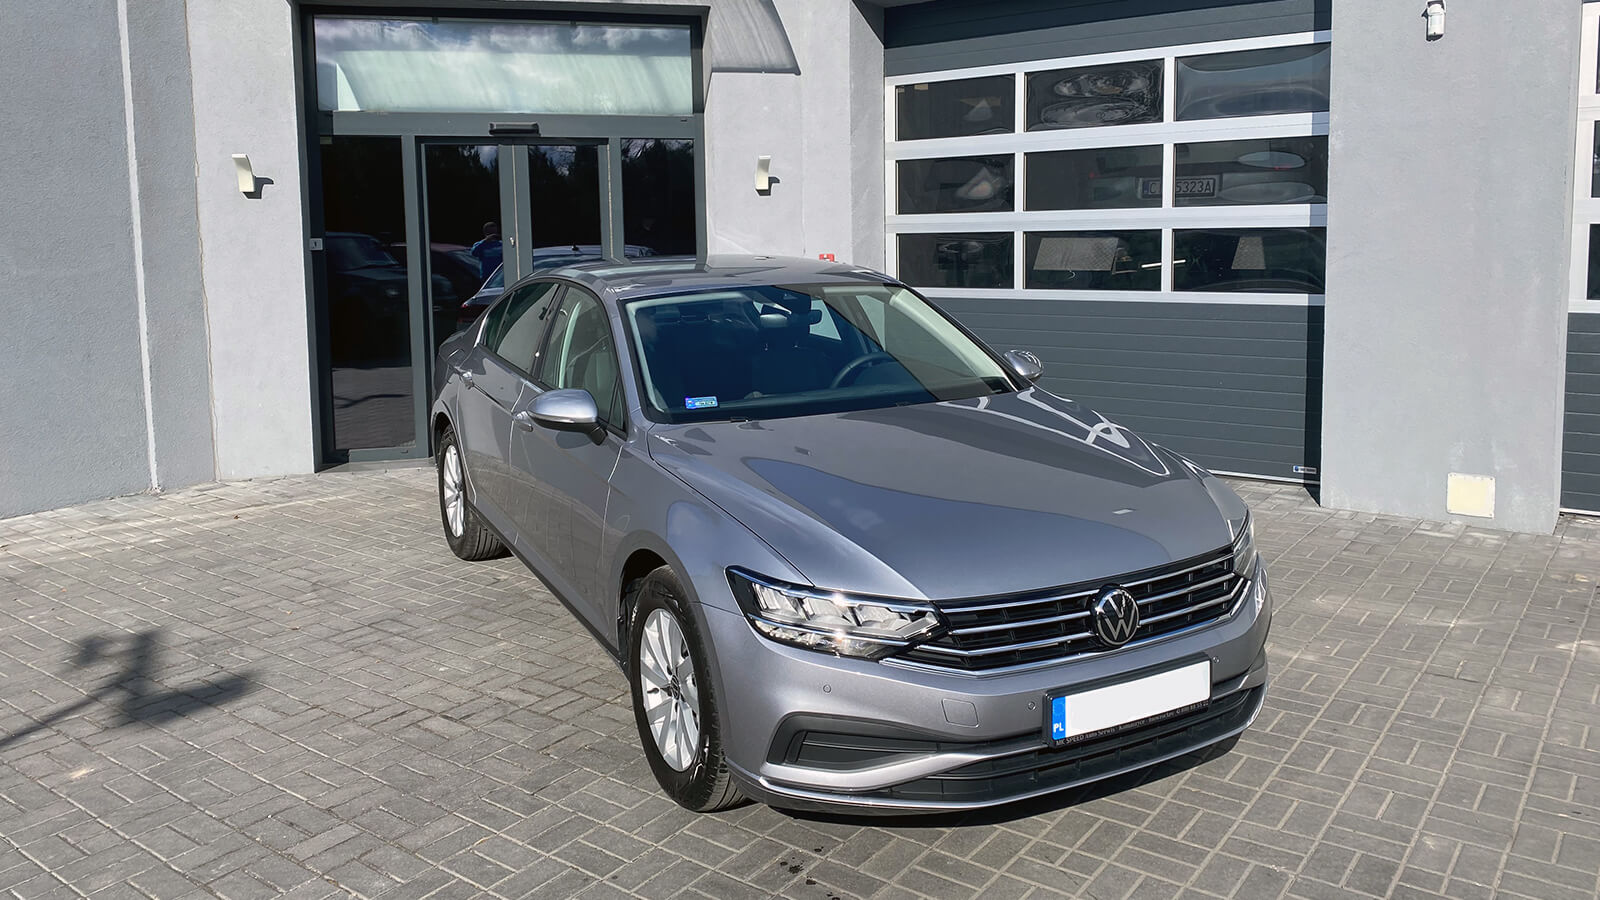 Volkswagen Passat 2021 - Mk Speed Rent a Car Inowrocław